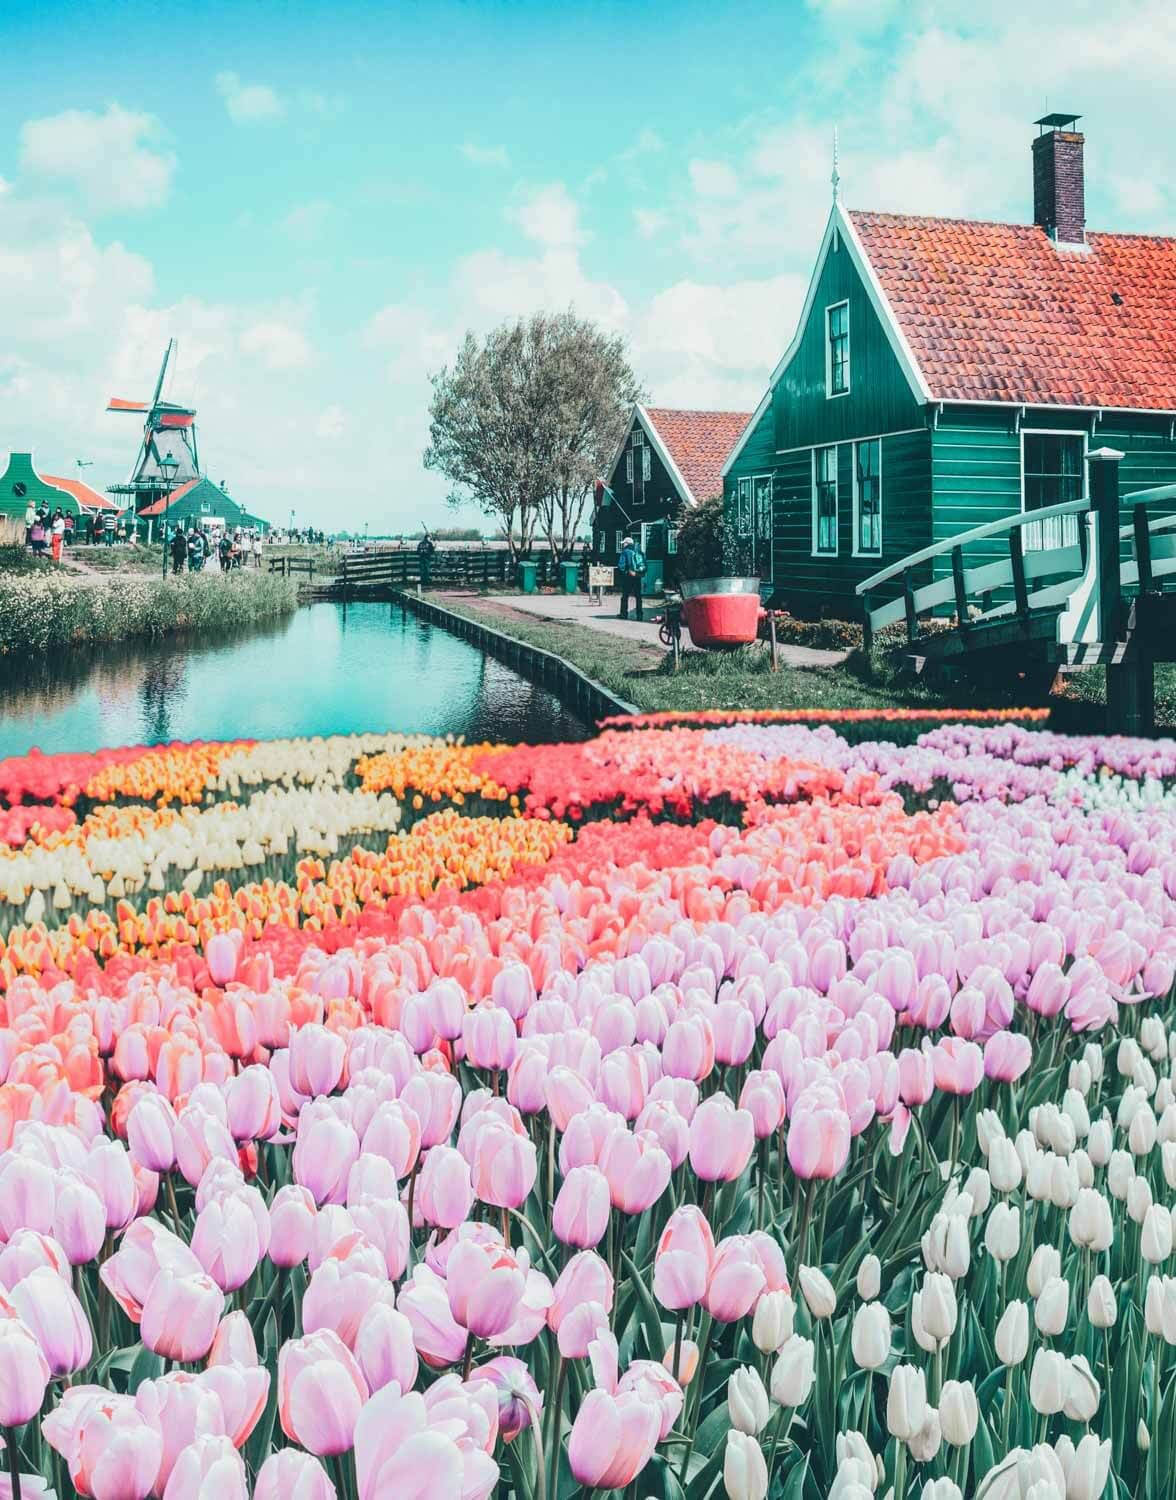 Top Things to do in the Netherlands #beautifulplaces